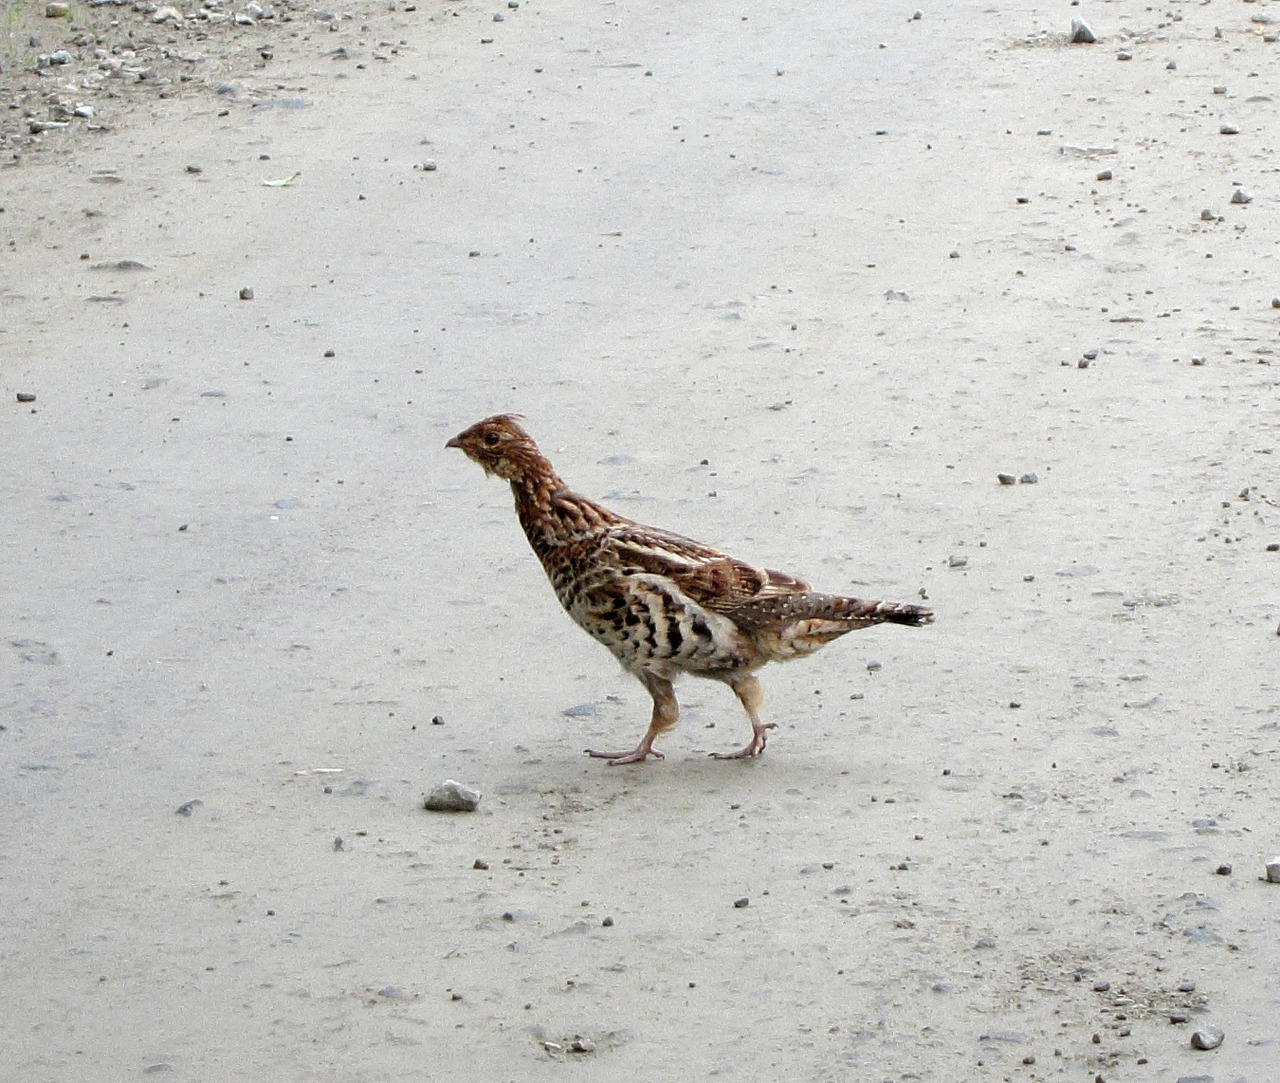 Anyone know what type of bird this is? He walked slowly in front of my car before disappearing into the bushes.